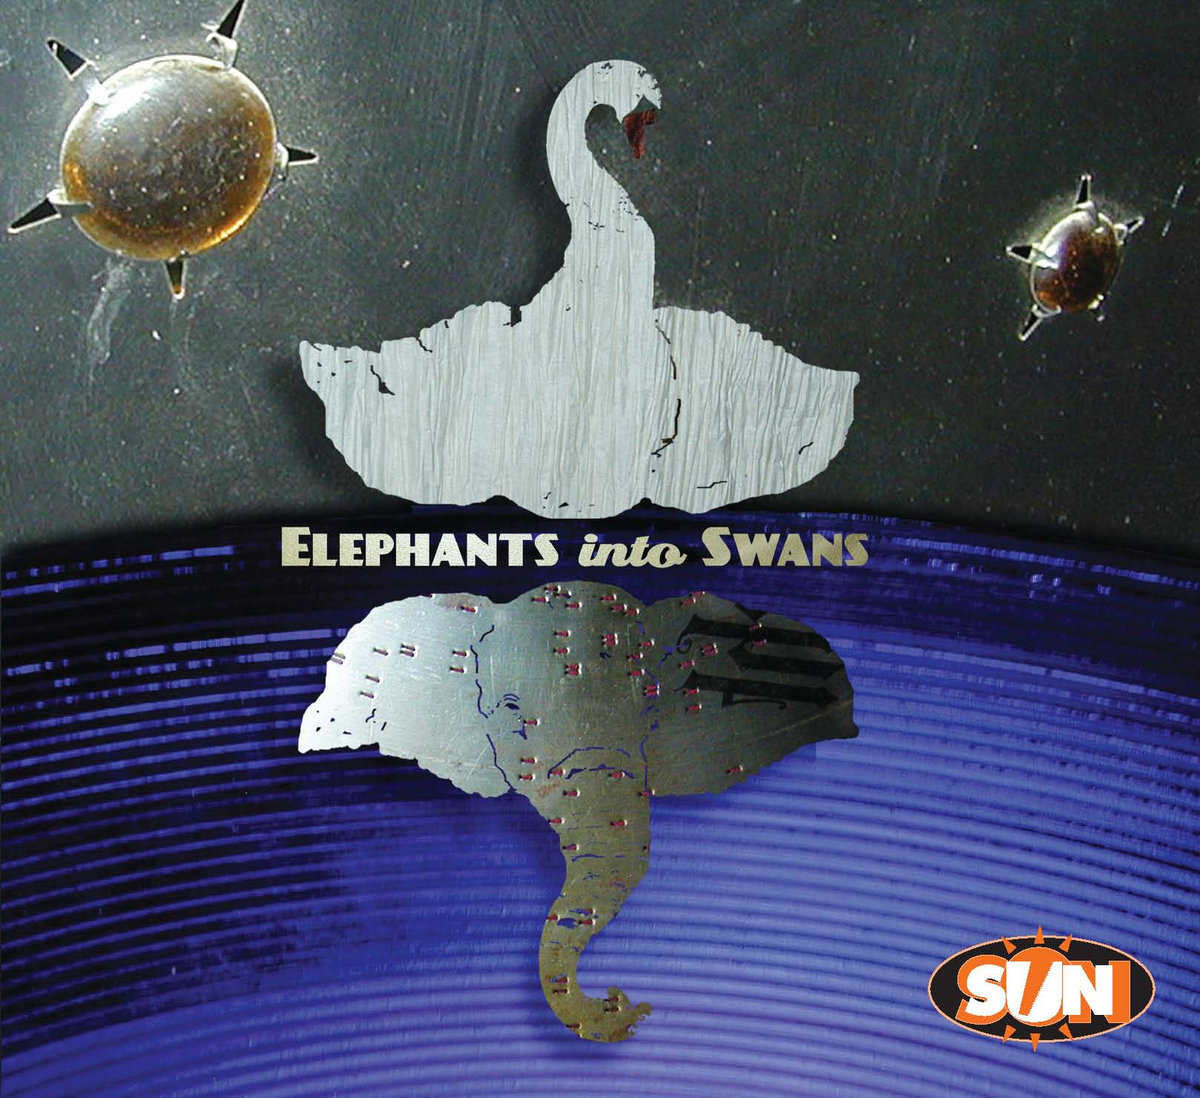 The Sun Sawed in 1/2 - Elephants Into Swans